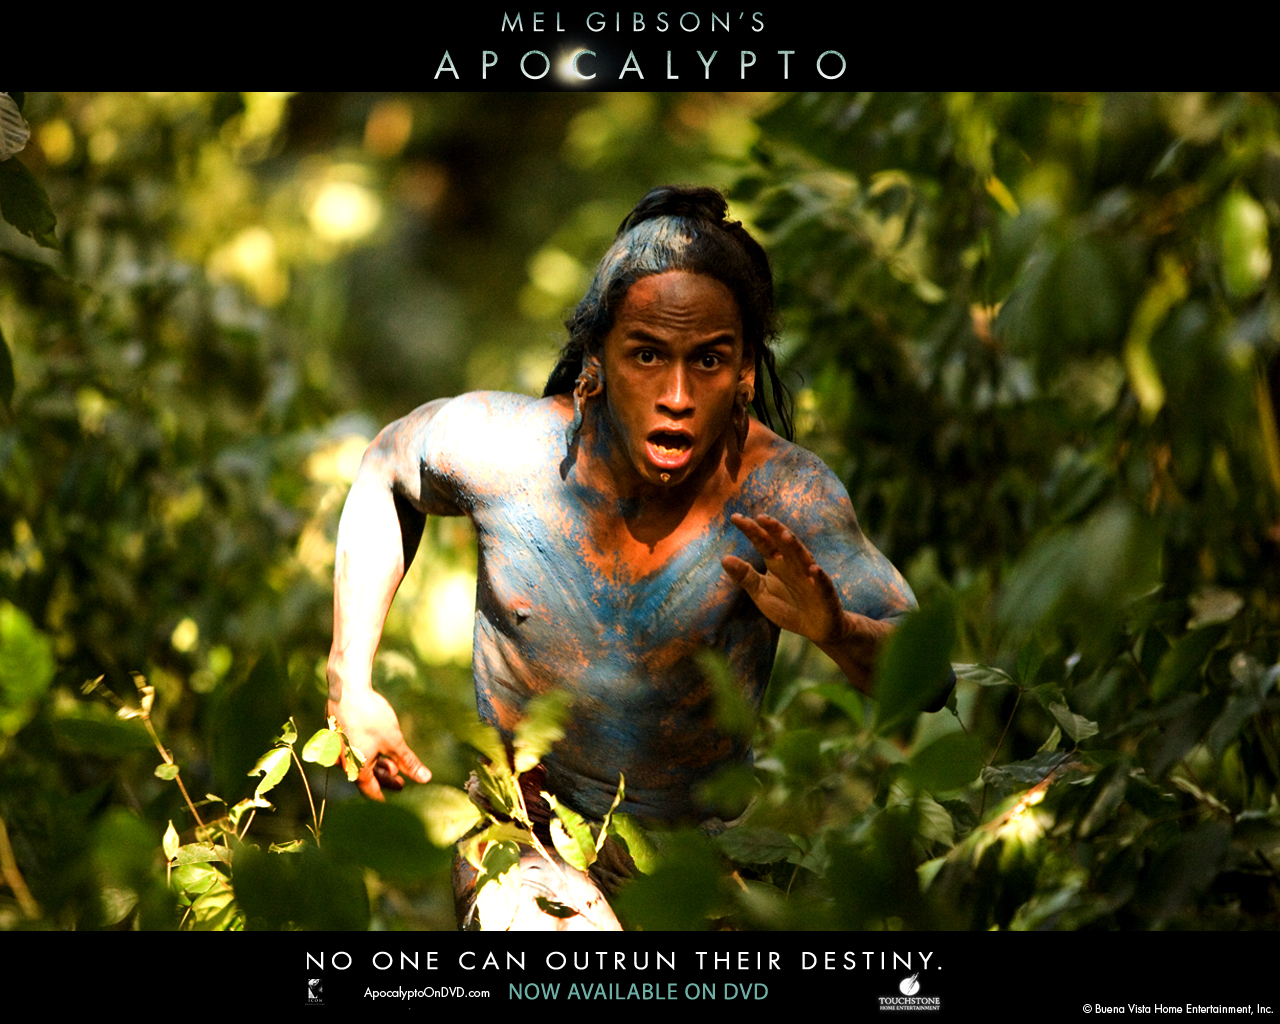 apocalypto images apocalypto hd wallpaper and background